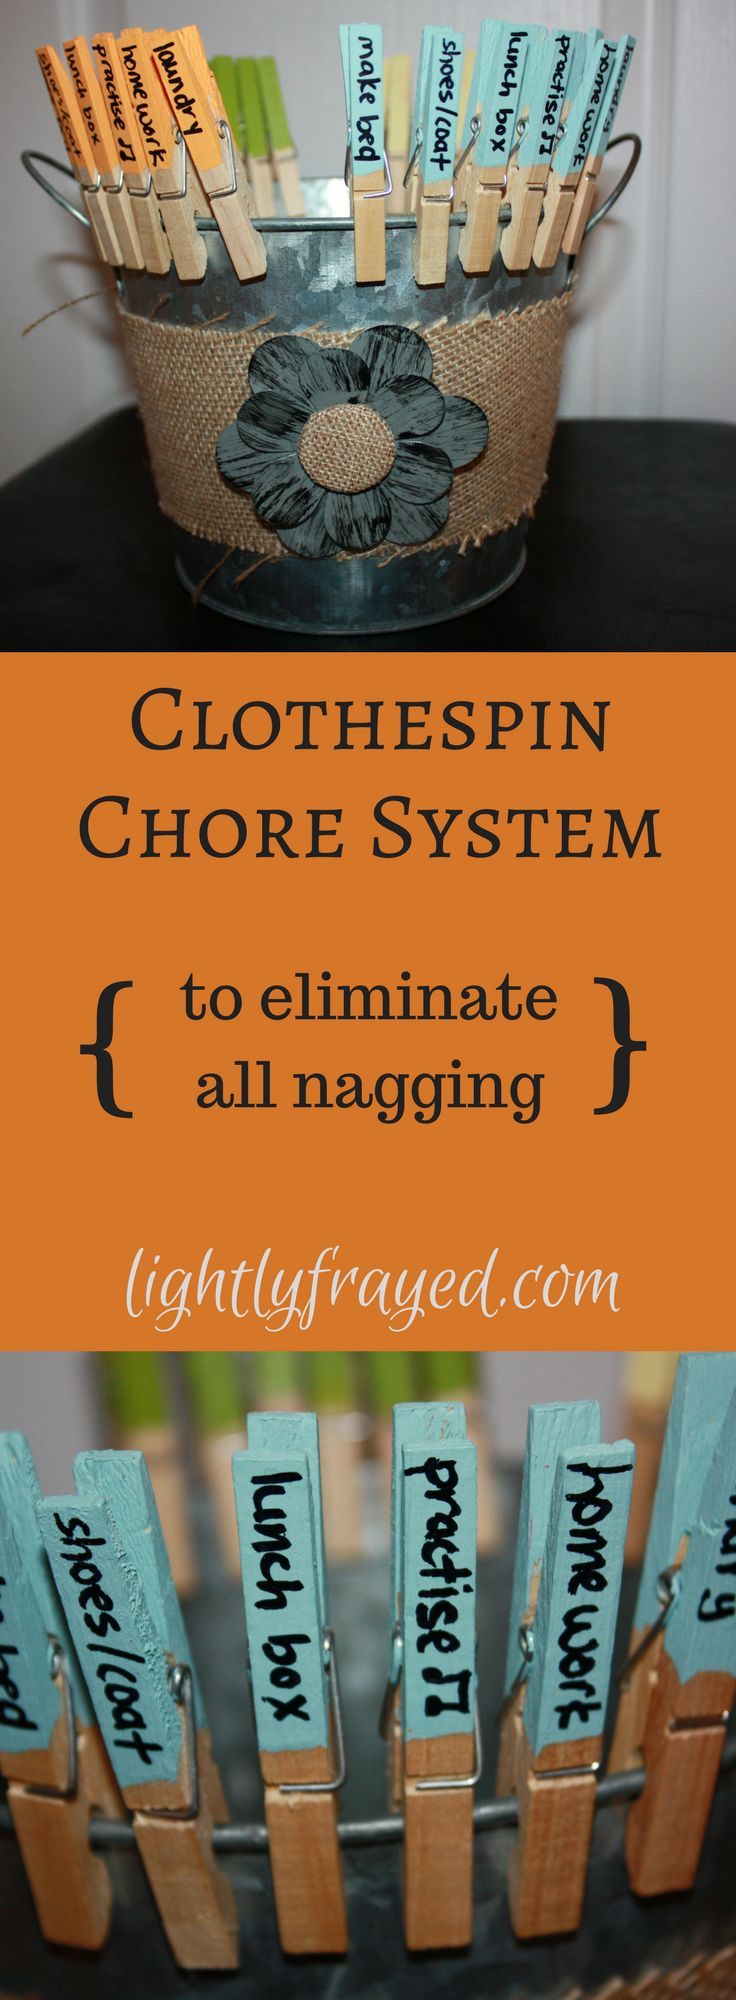 This simple clothespin chore system is easy to create and implement. Click to ready how our chores are completed without nagging or reminding....true story.